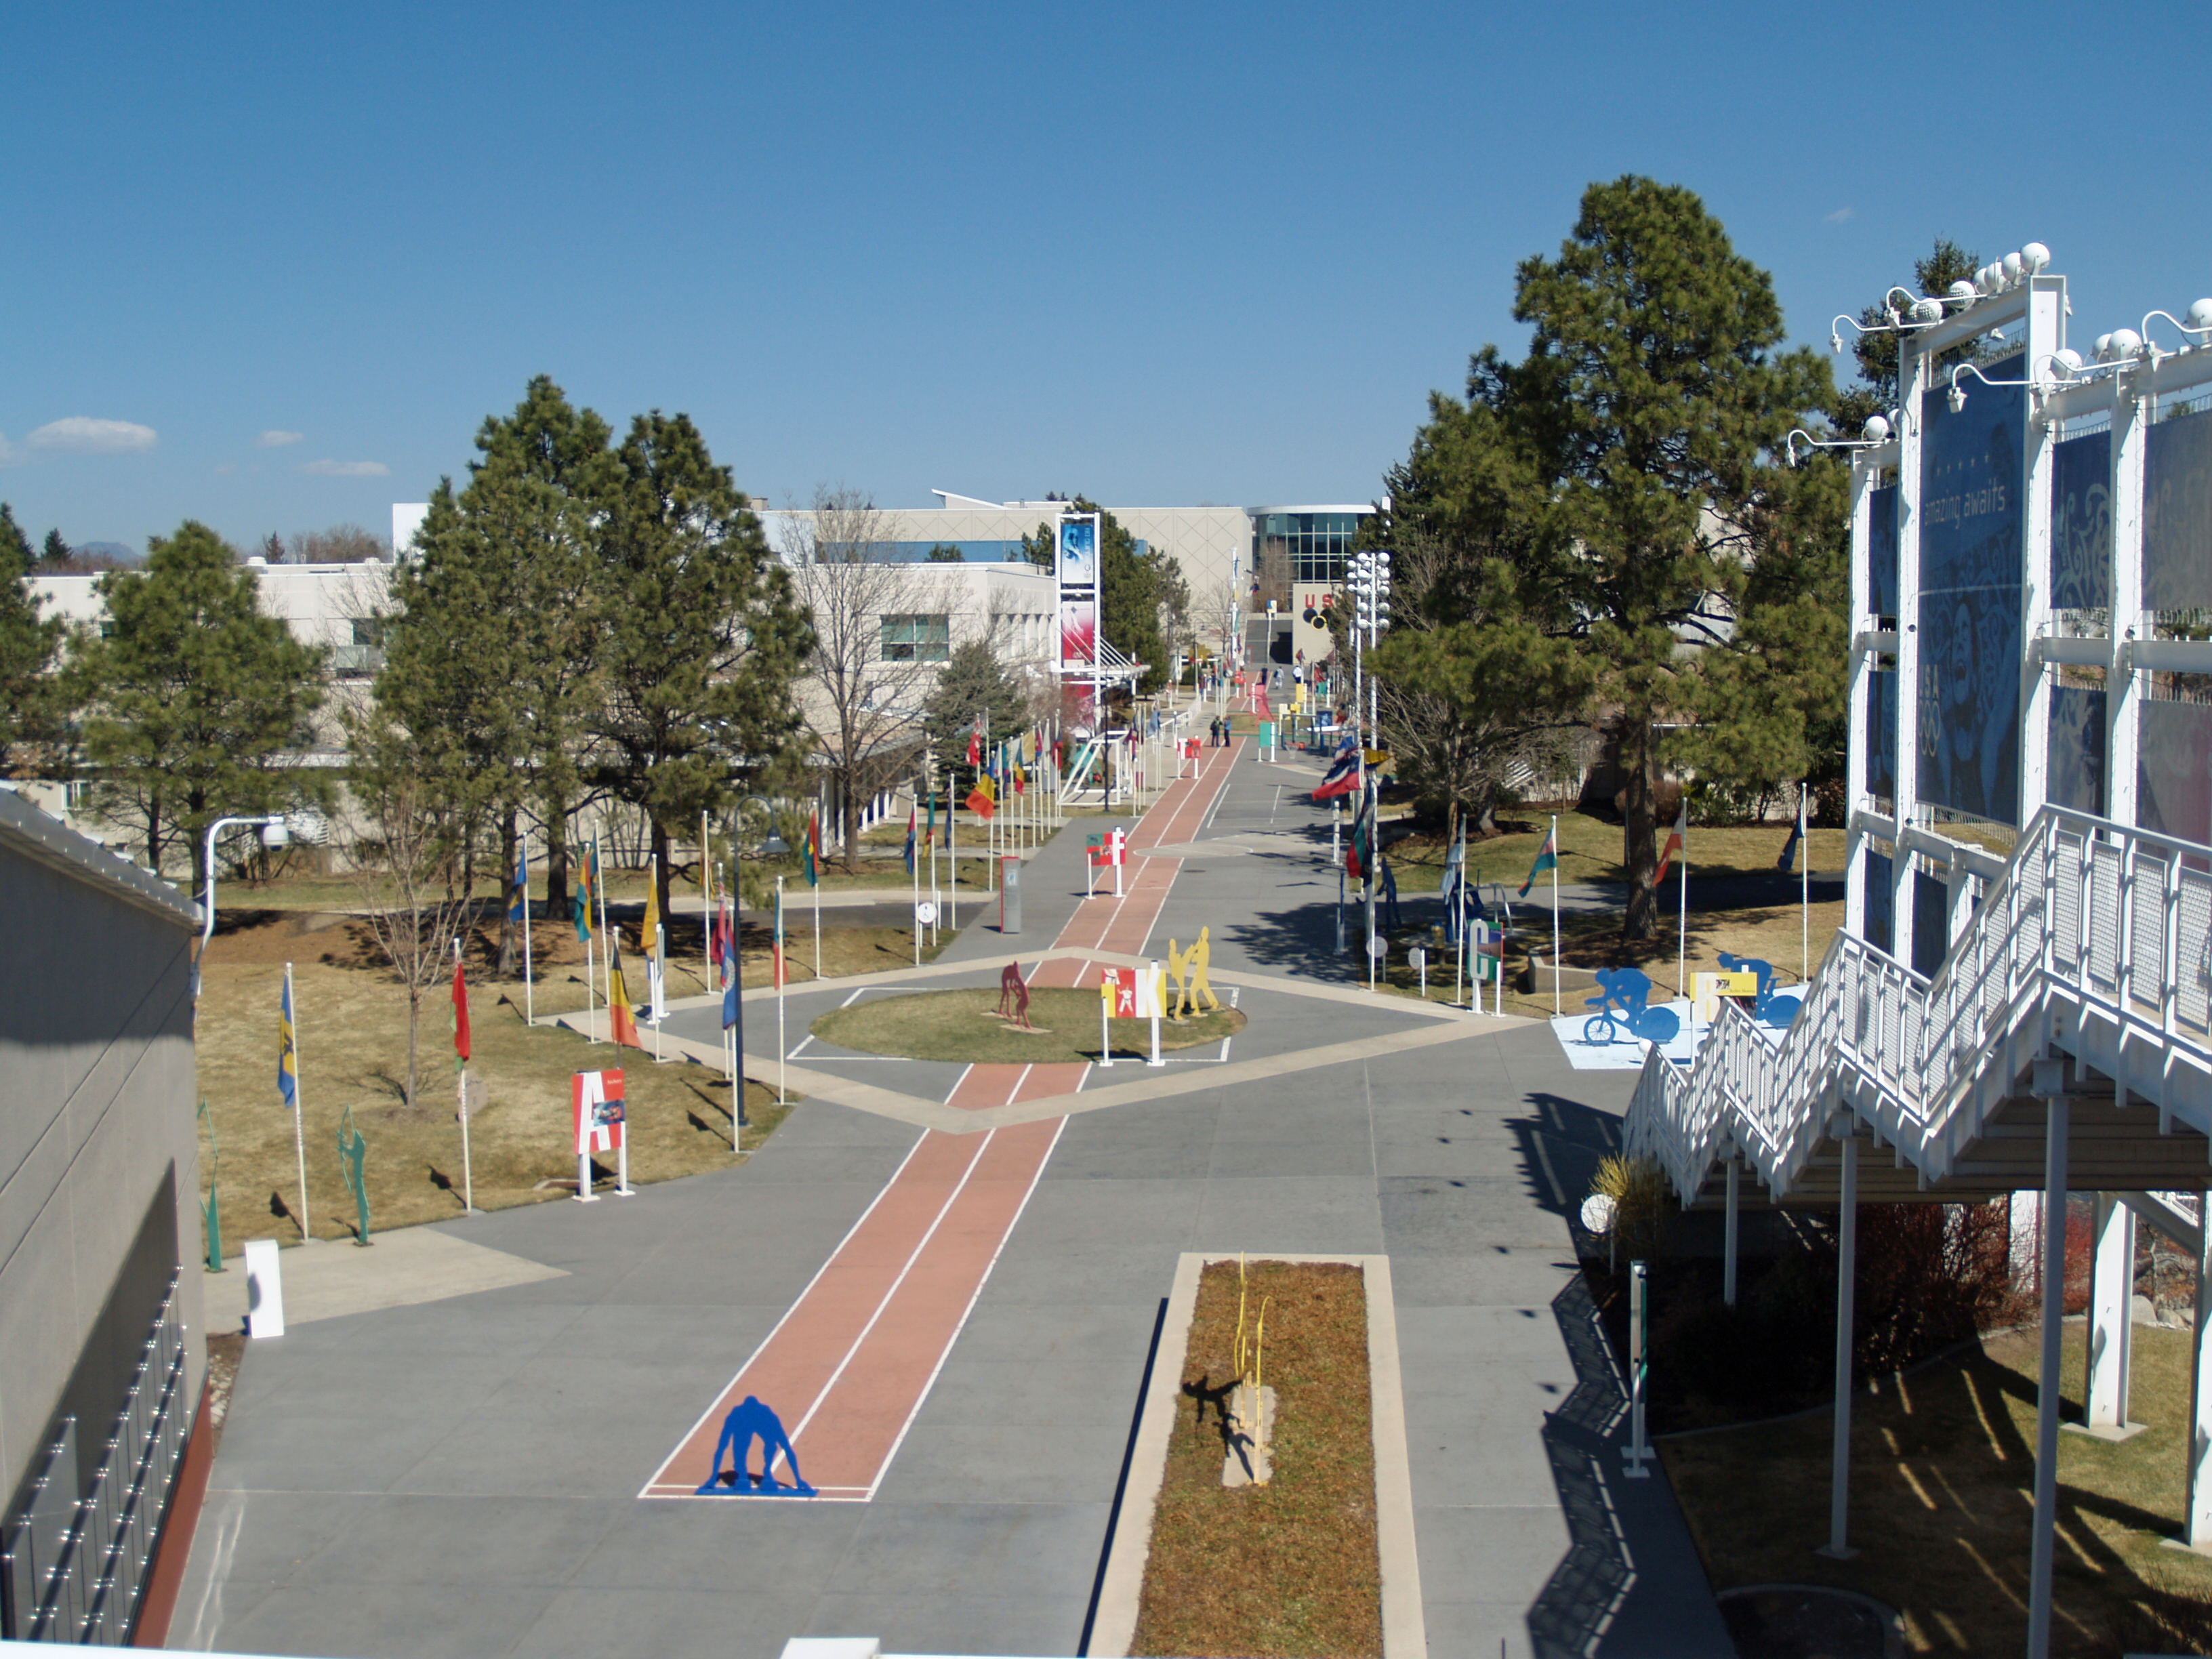 The grounds of the training facilities in Colorado Springs.